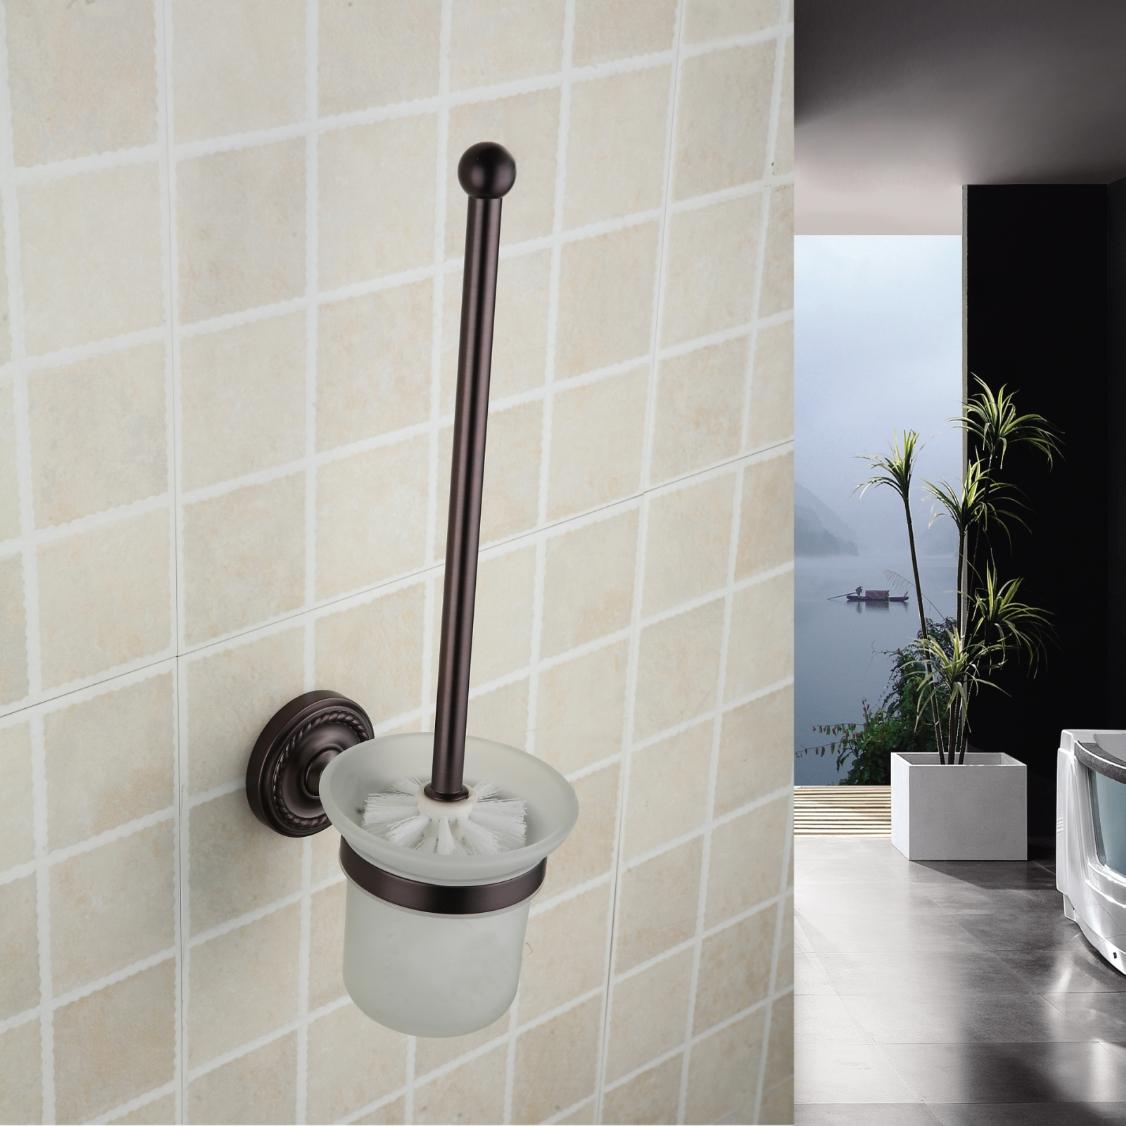 Oil Rubbed Bronze Wall Mounted Wall Mounted Toilet Brush